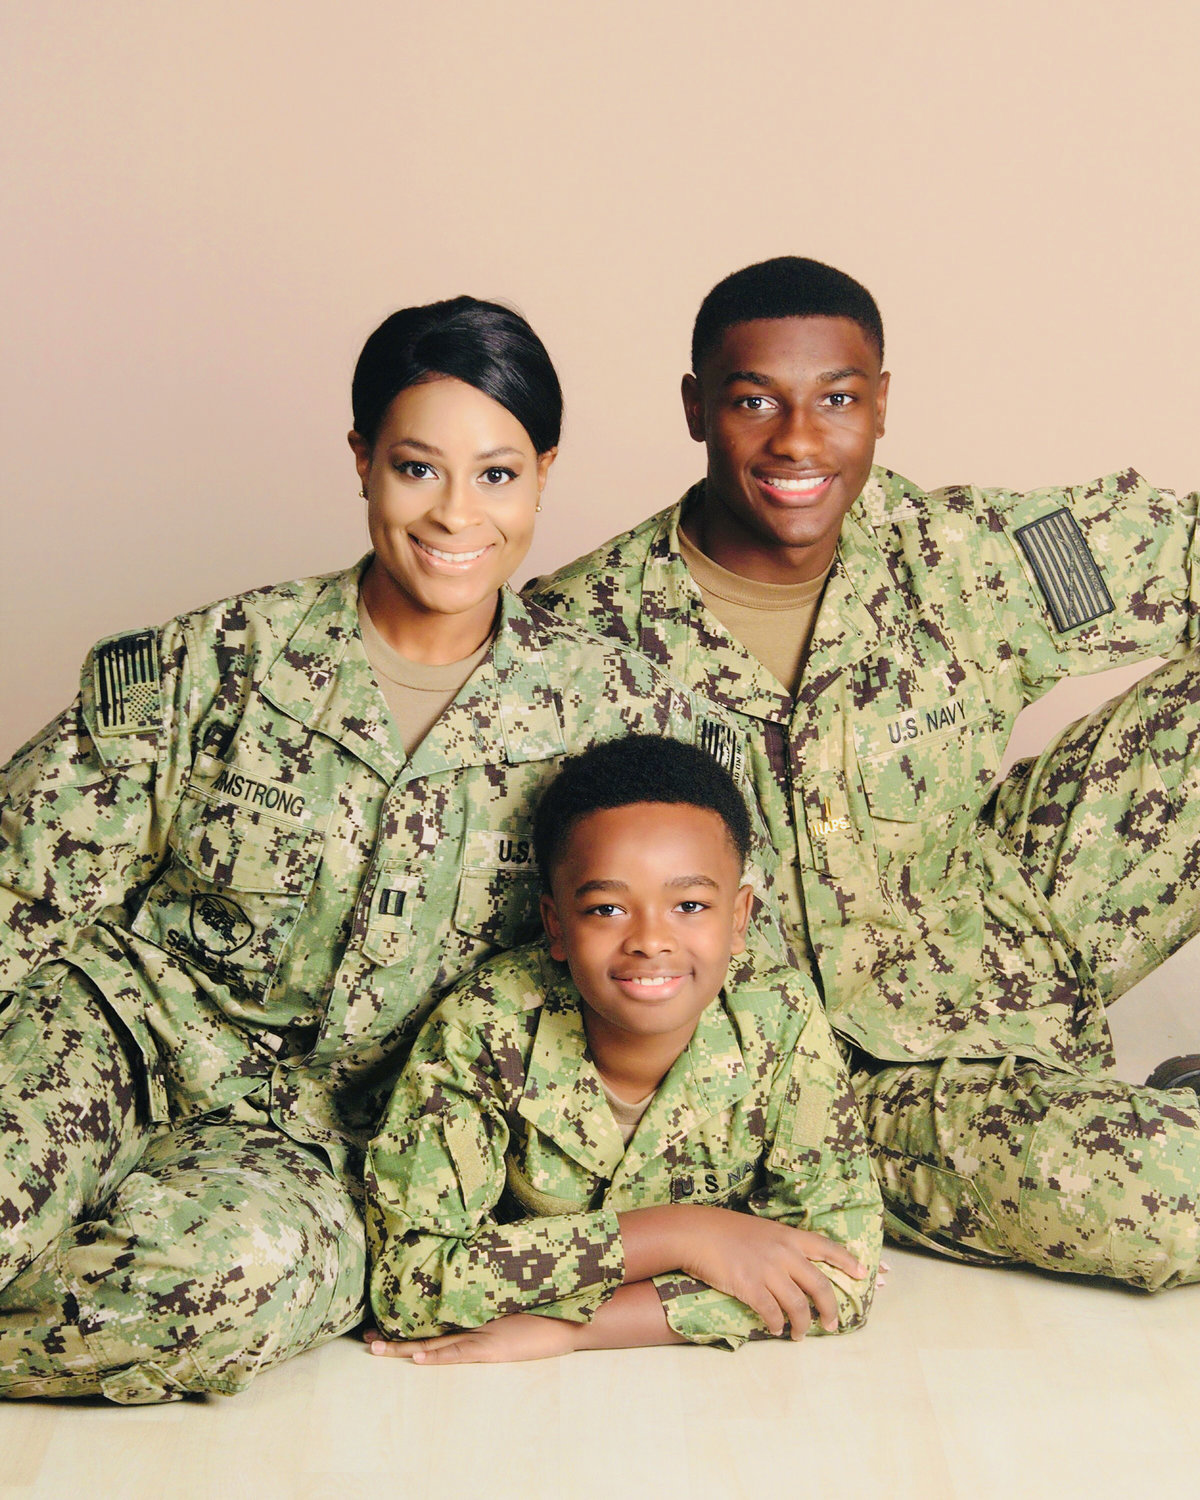 U.S. Naval Academy Lt. Yvonne Armstrong with her sons Christian, center, and Zion.